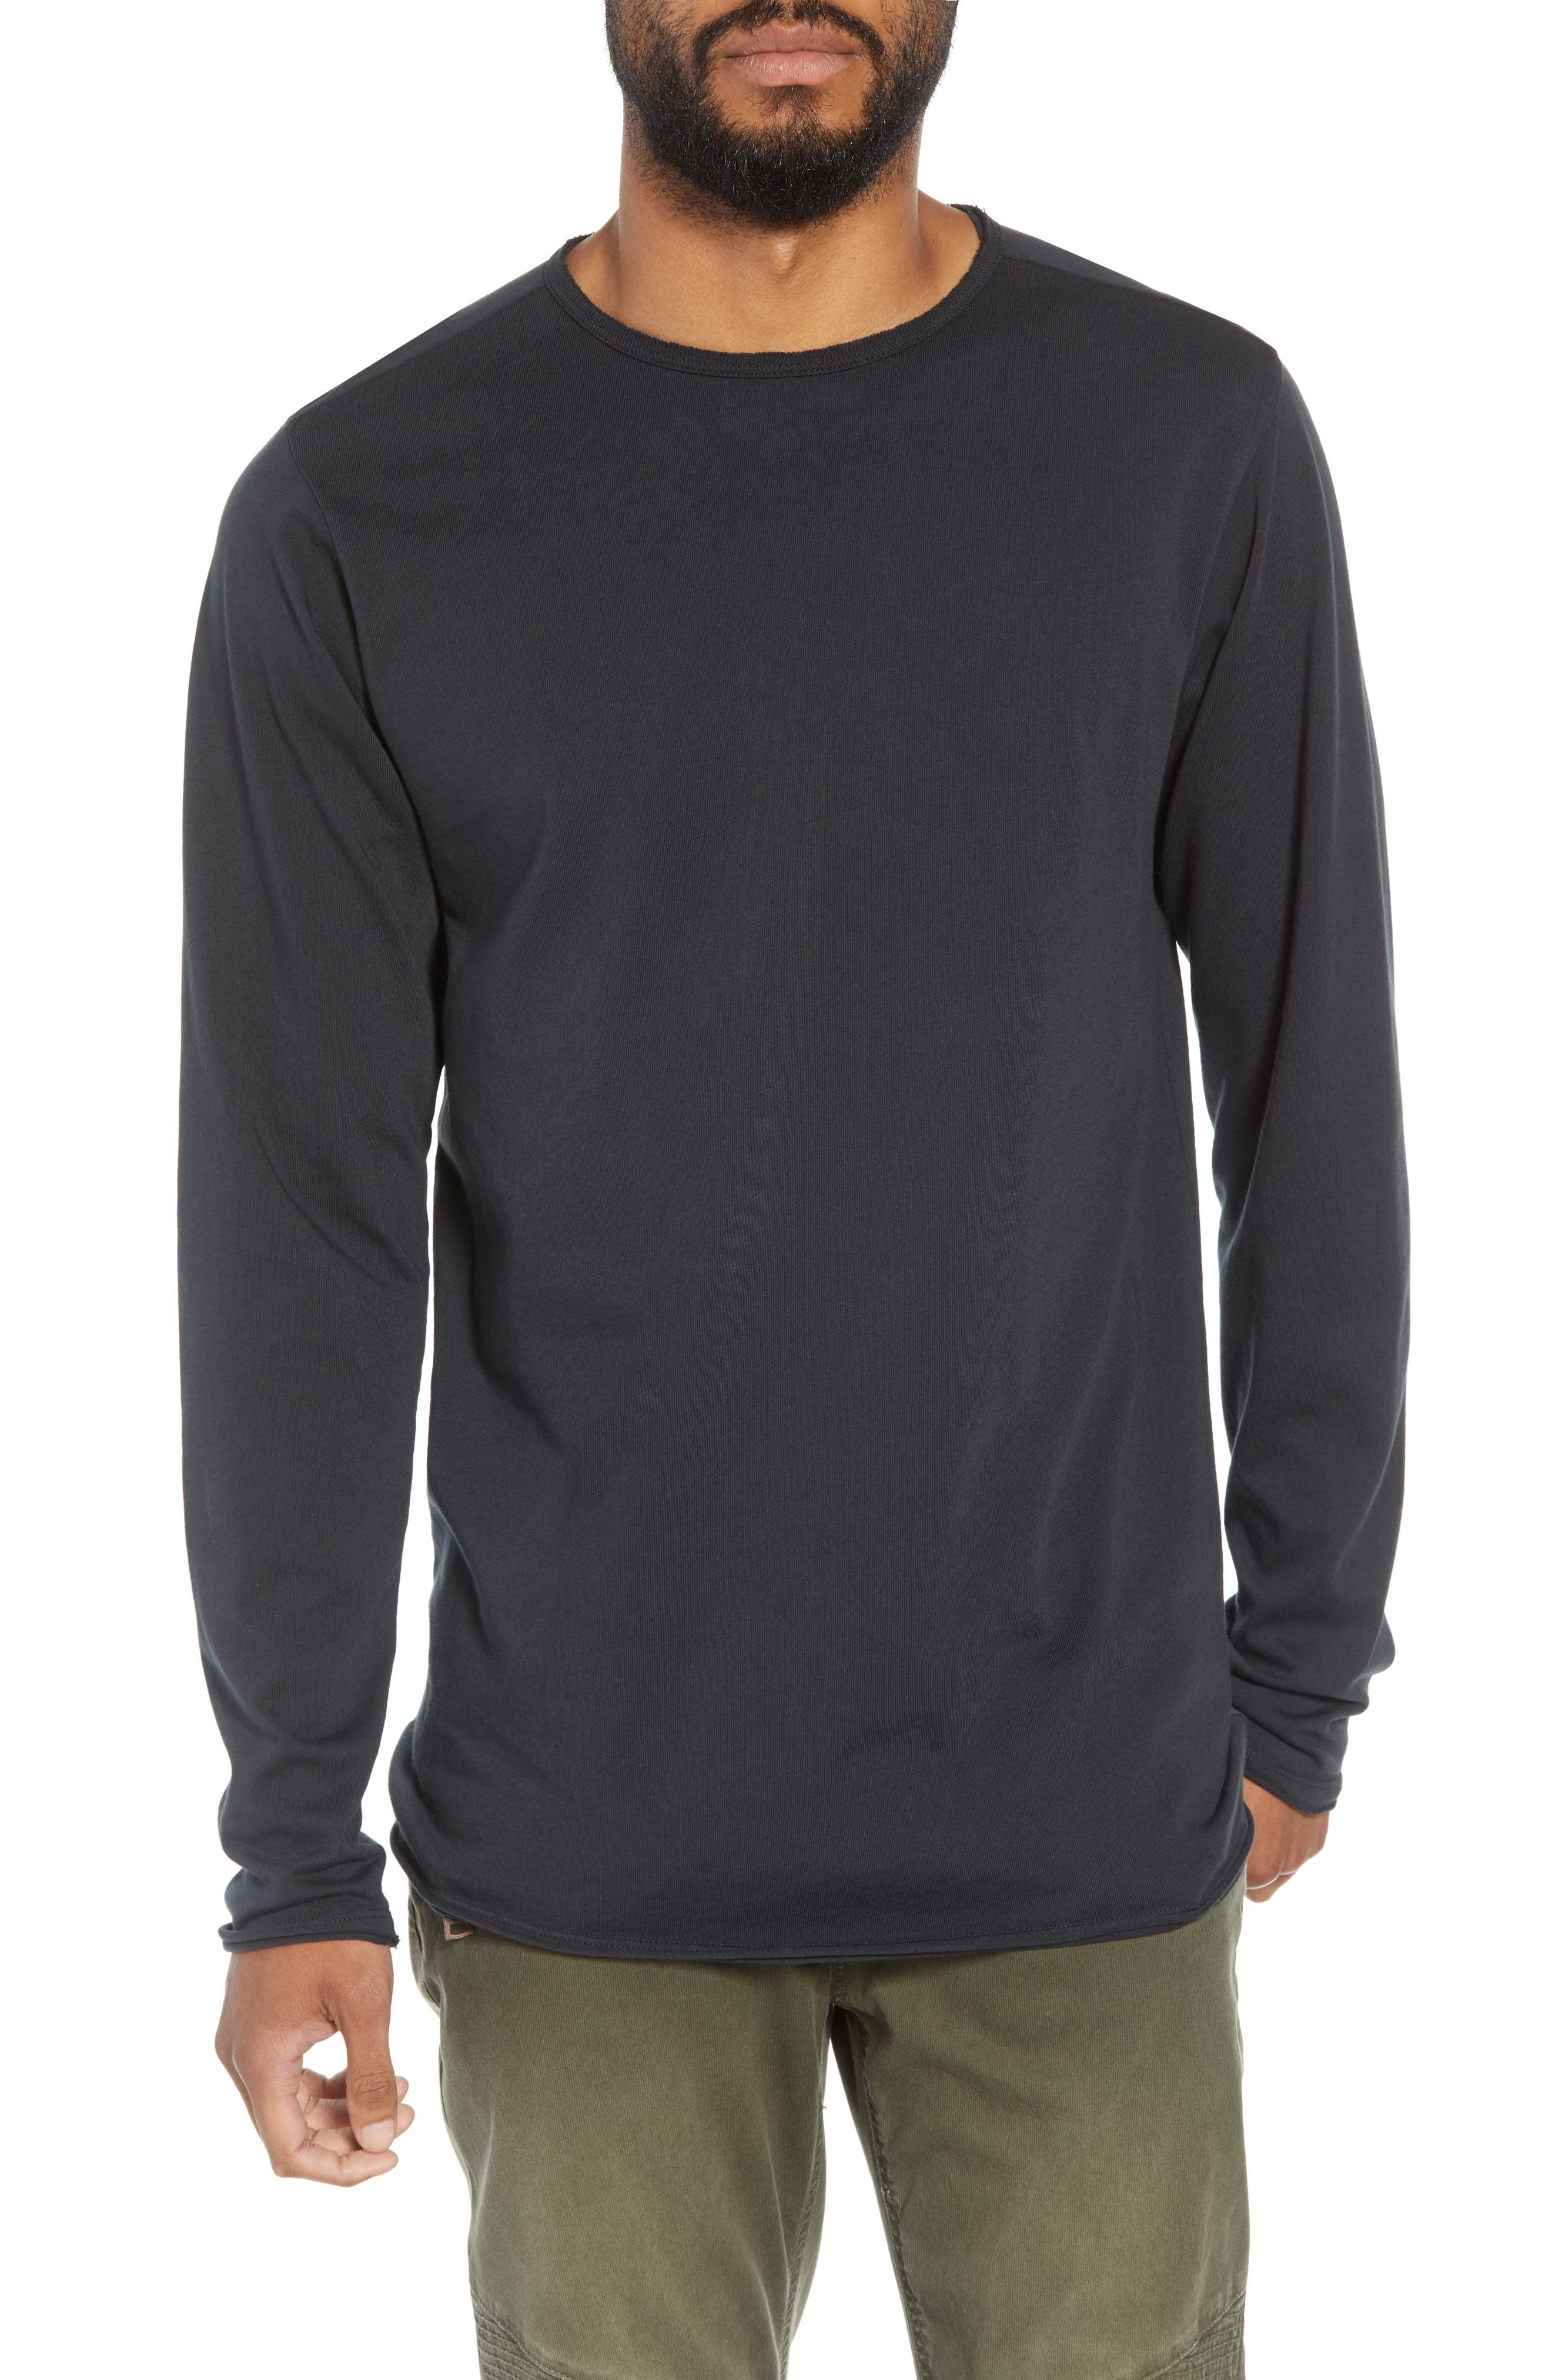 Hudson Elongated Long Sleeve T-Shirt,                             Main thumbnail 1, color,                             BLACK